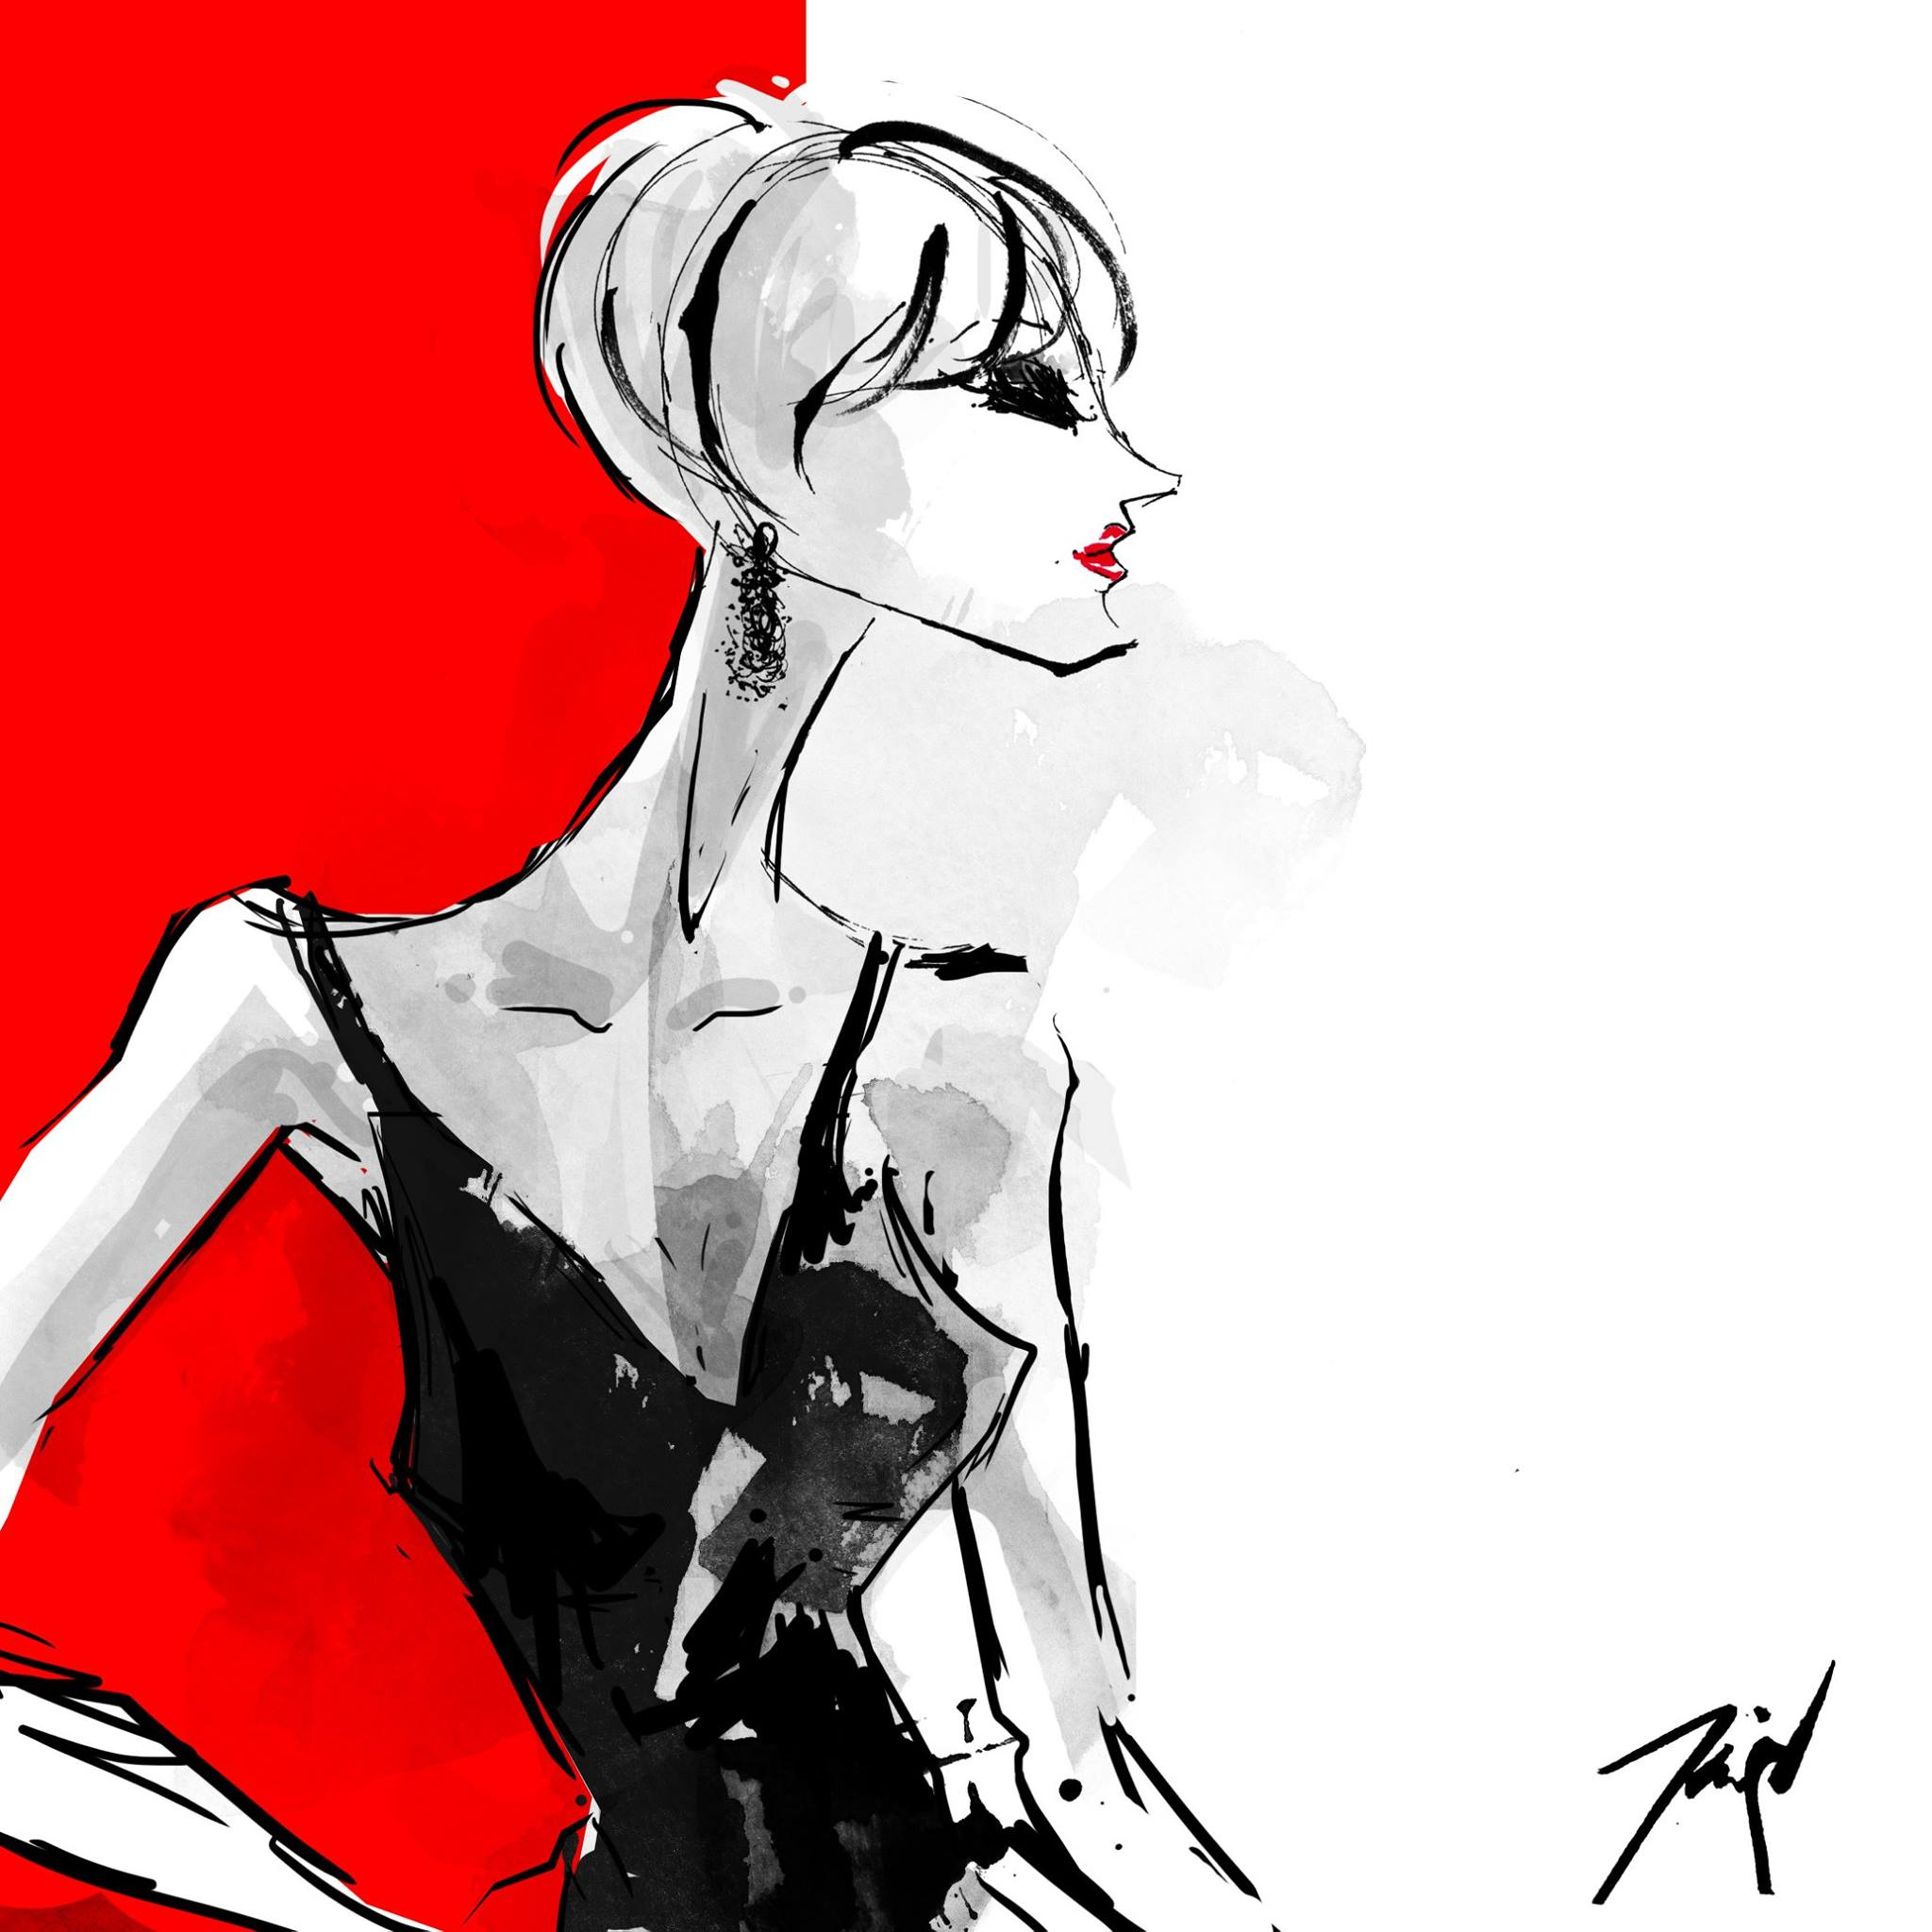 valencia fashion blogger david yza moda ilustration somethingfashion spain blogdemoda amanda ramon